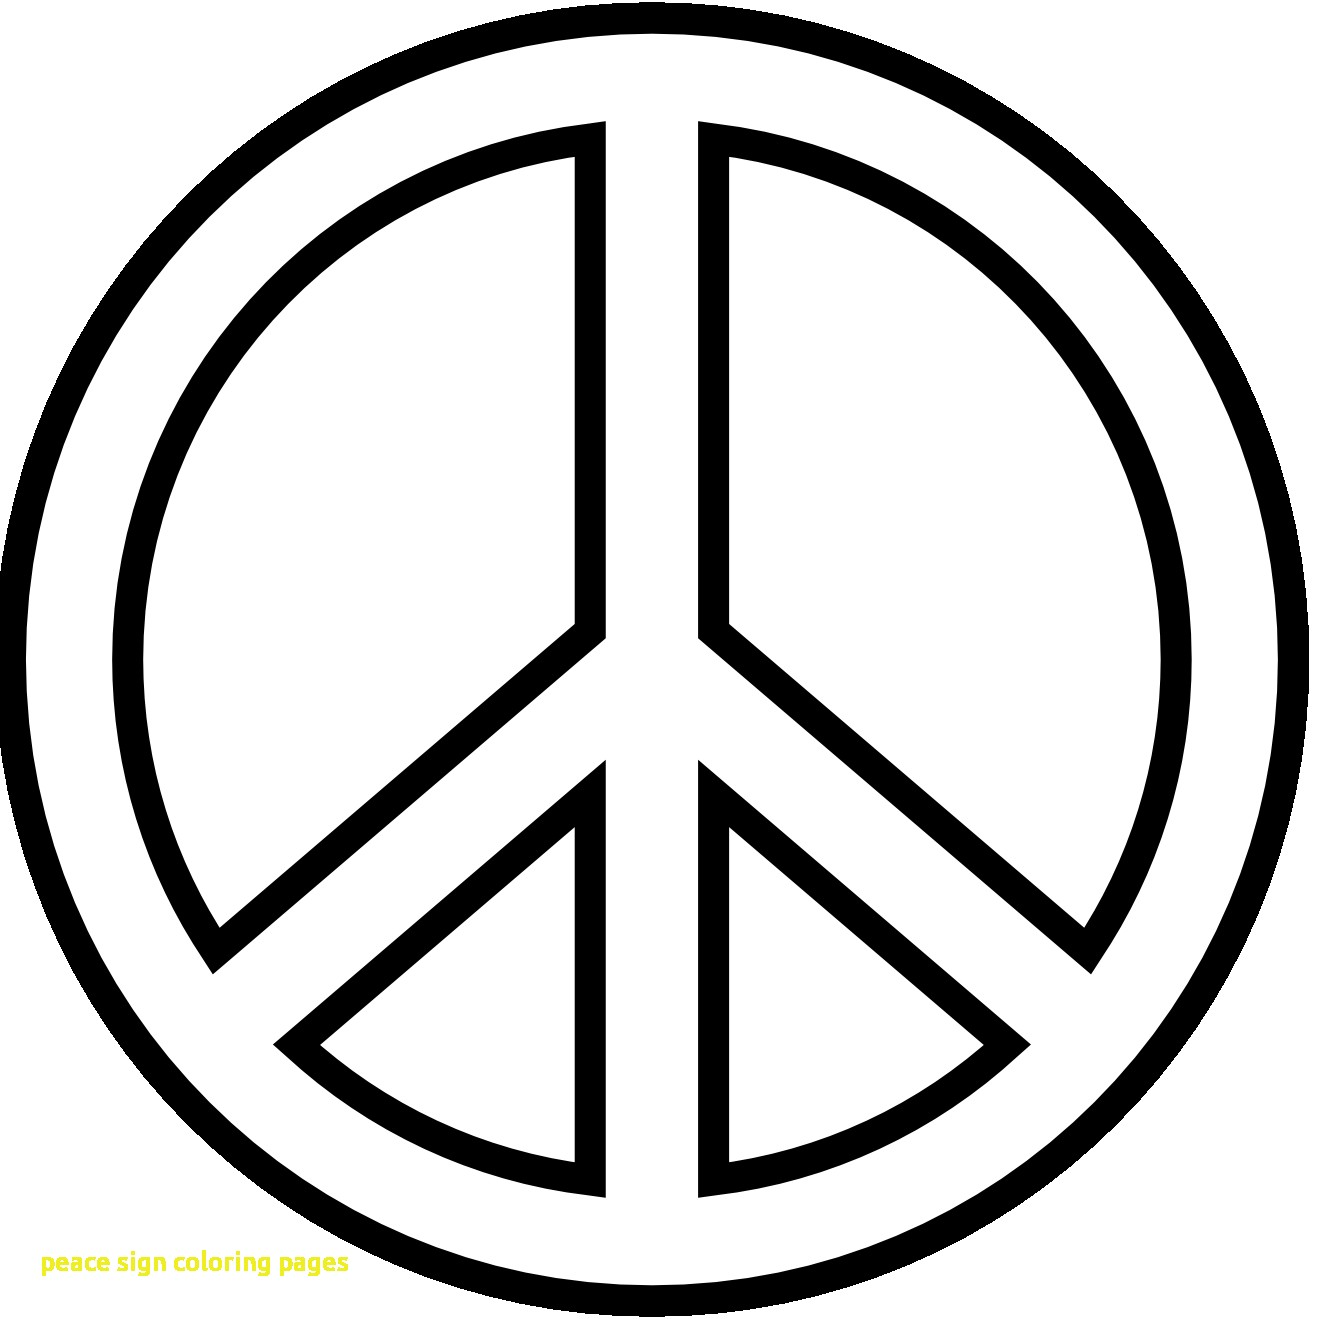 1331x1319 Peace Sign Coloring Pages With Free Peace Sign Coloring Pages